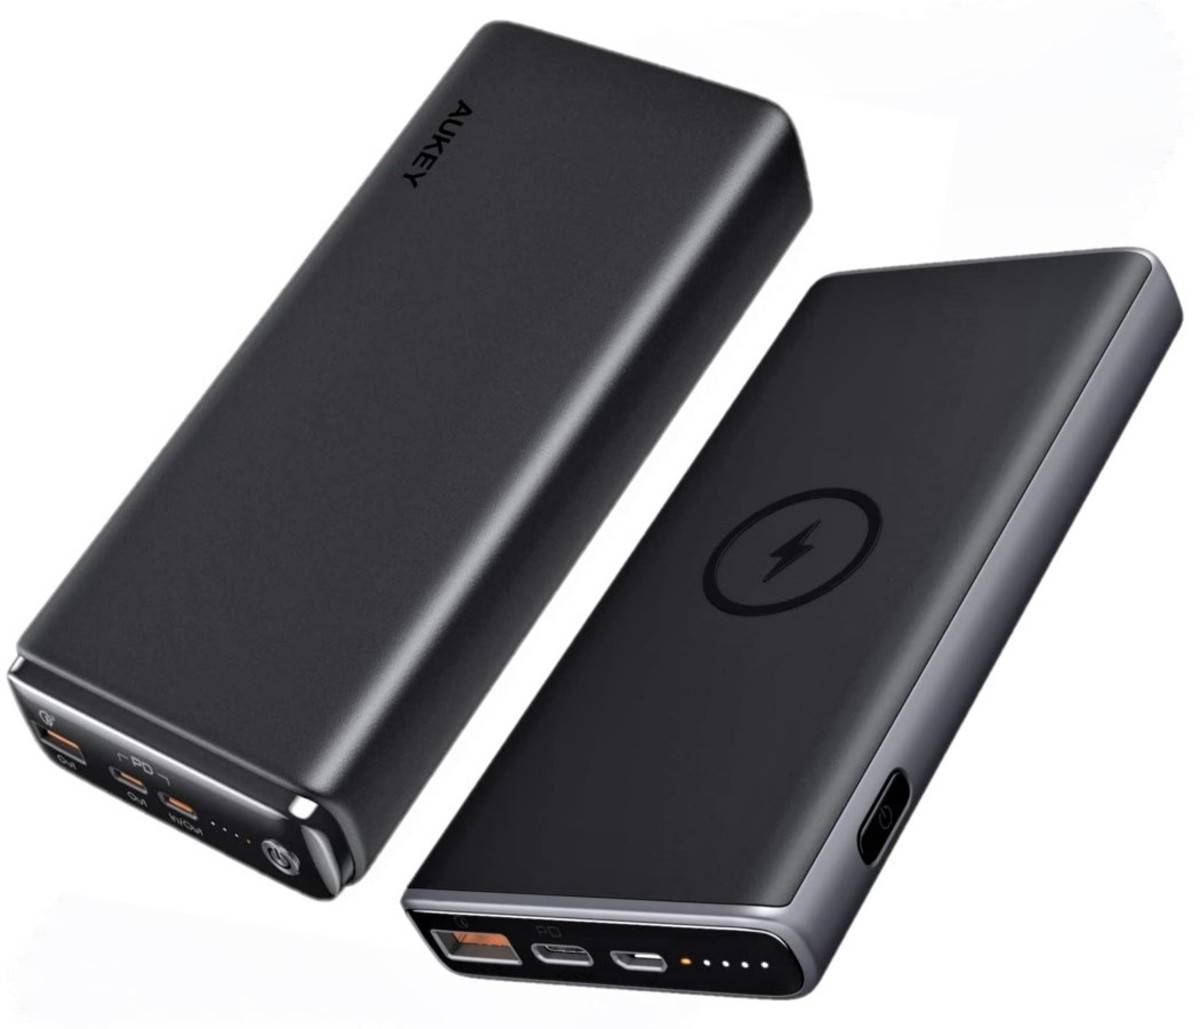 Aukey 26800mAh Universal Power Bank (left) - Aukey 10000mAh Wireless Charging Power Bank (right)